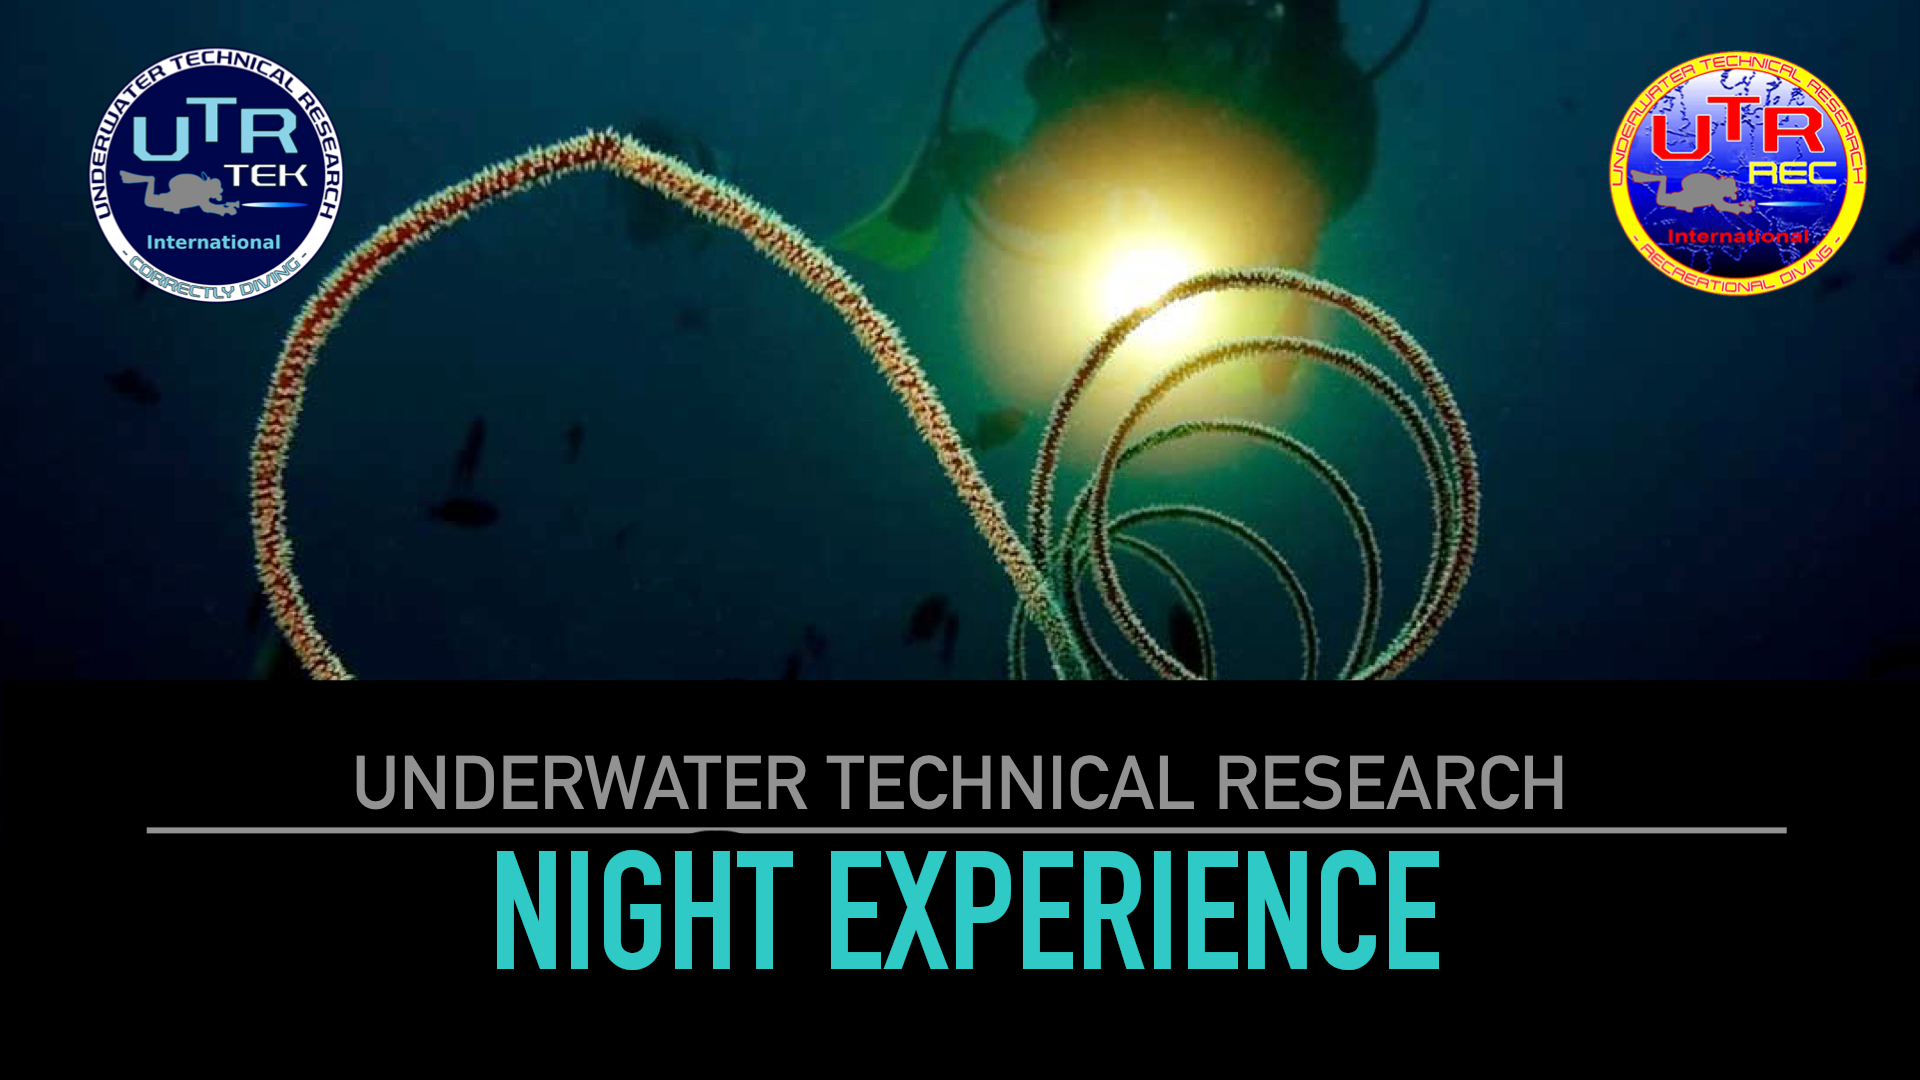 NIGHT DIVING EXPERIENCE